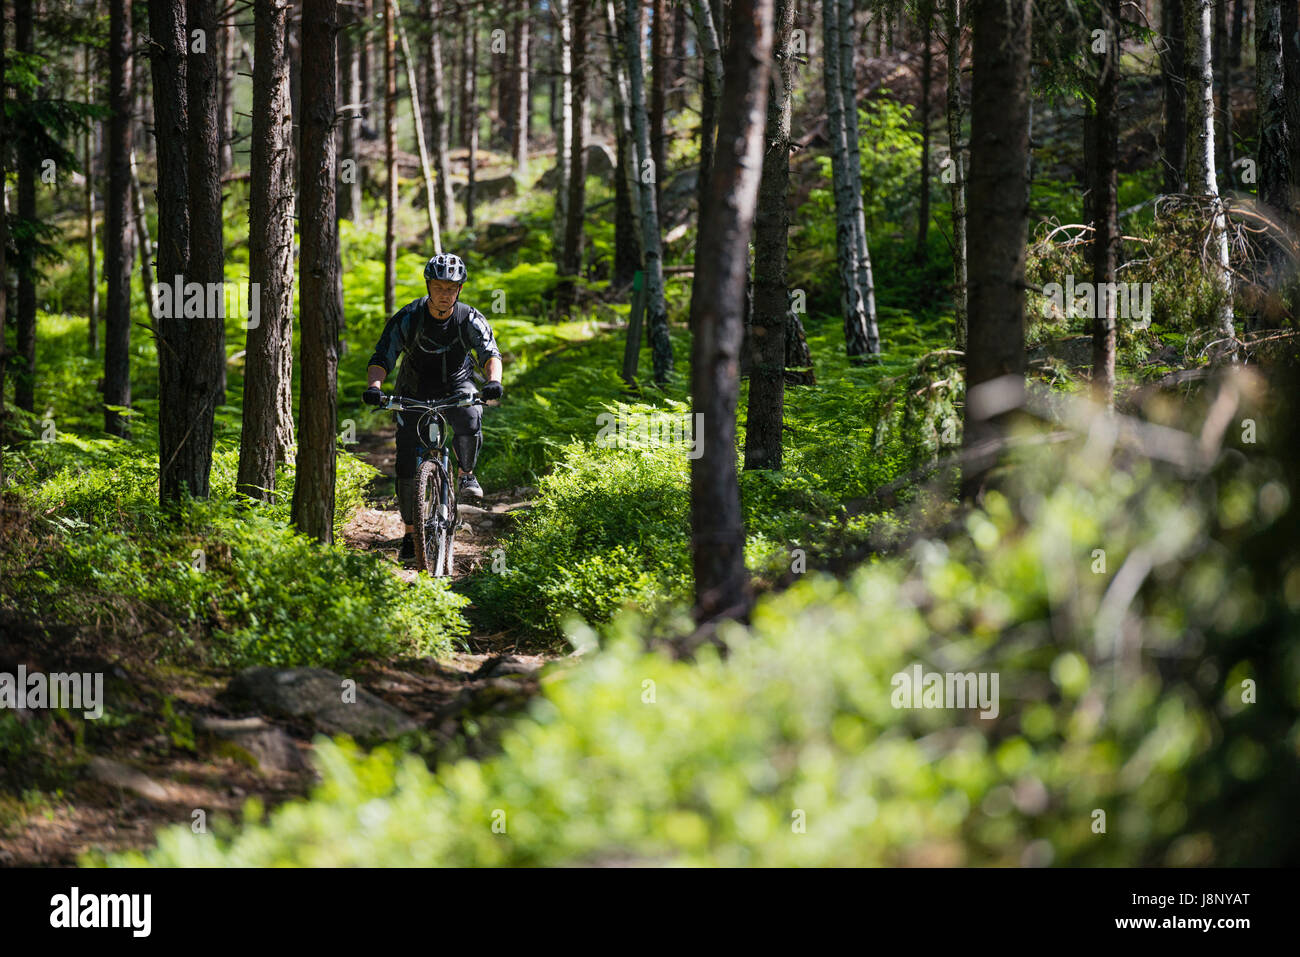 Man riding bicycle in forest Banque D'Images